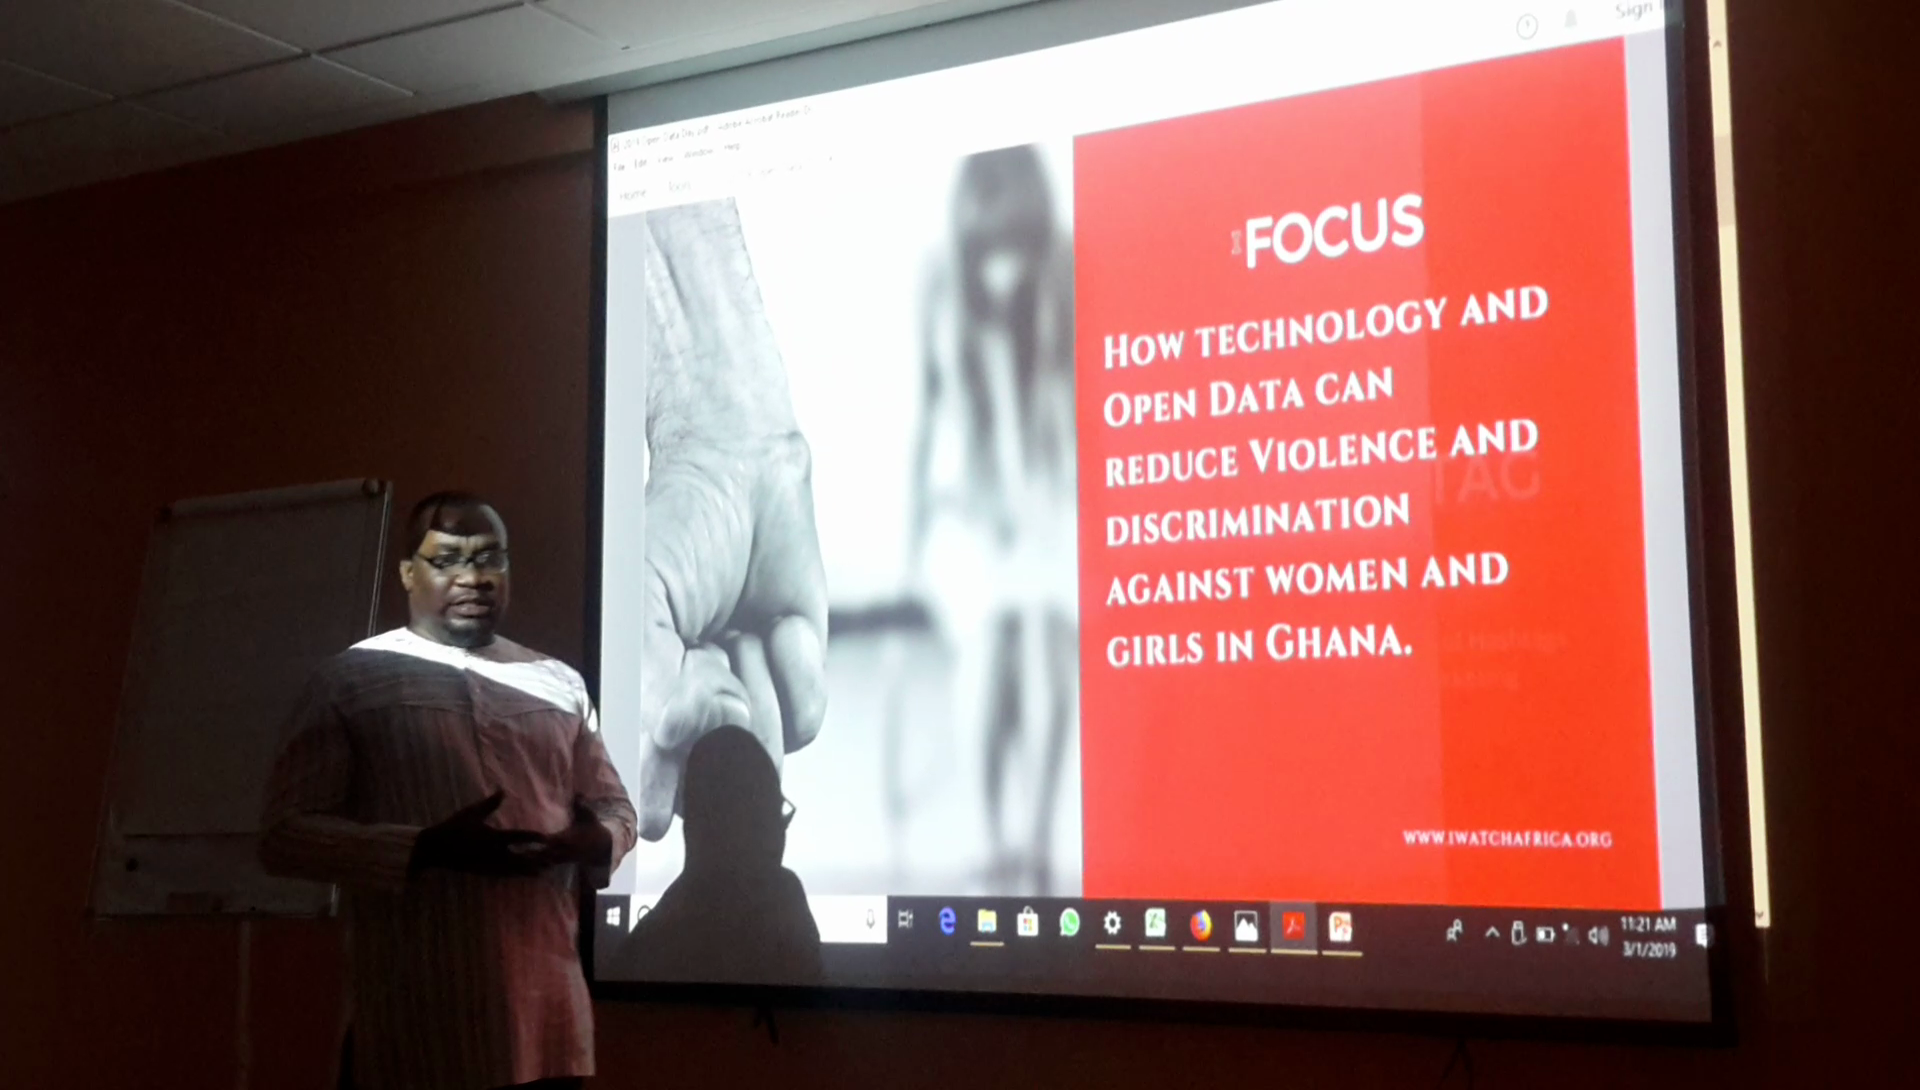 Gideon Sarpong, main speaker at Open Data Day 2019, organised by iWatch Africa